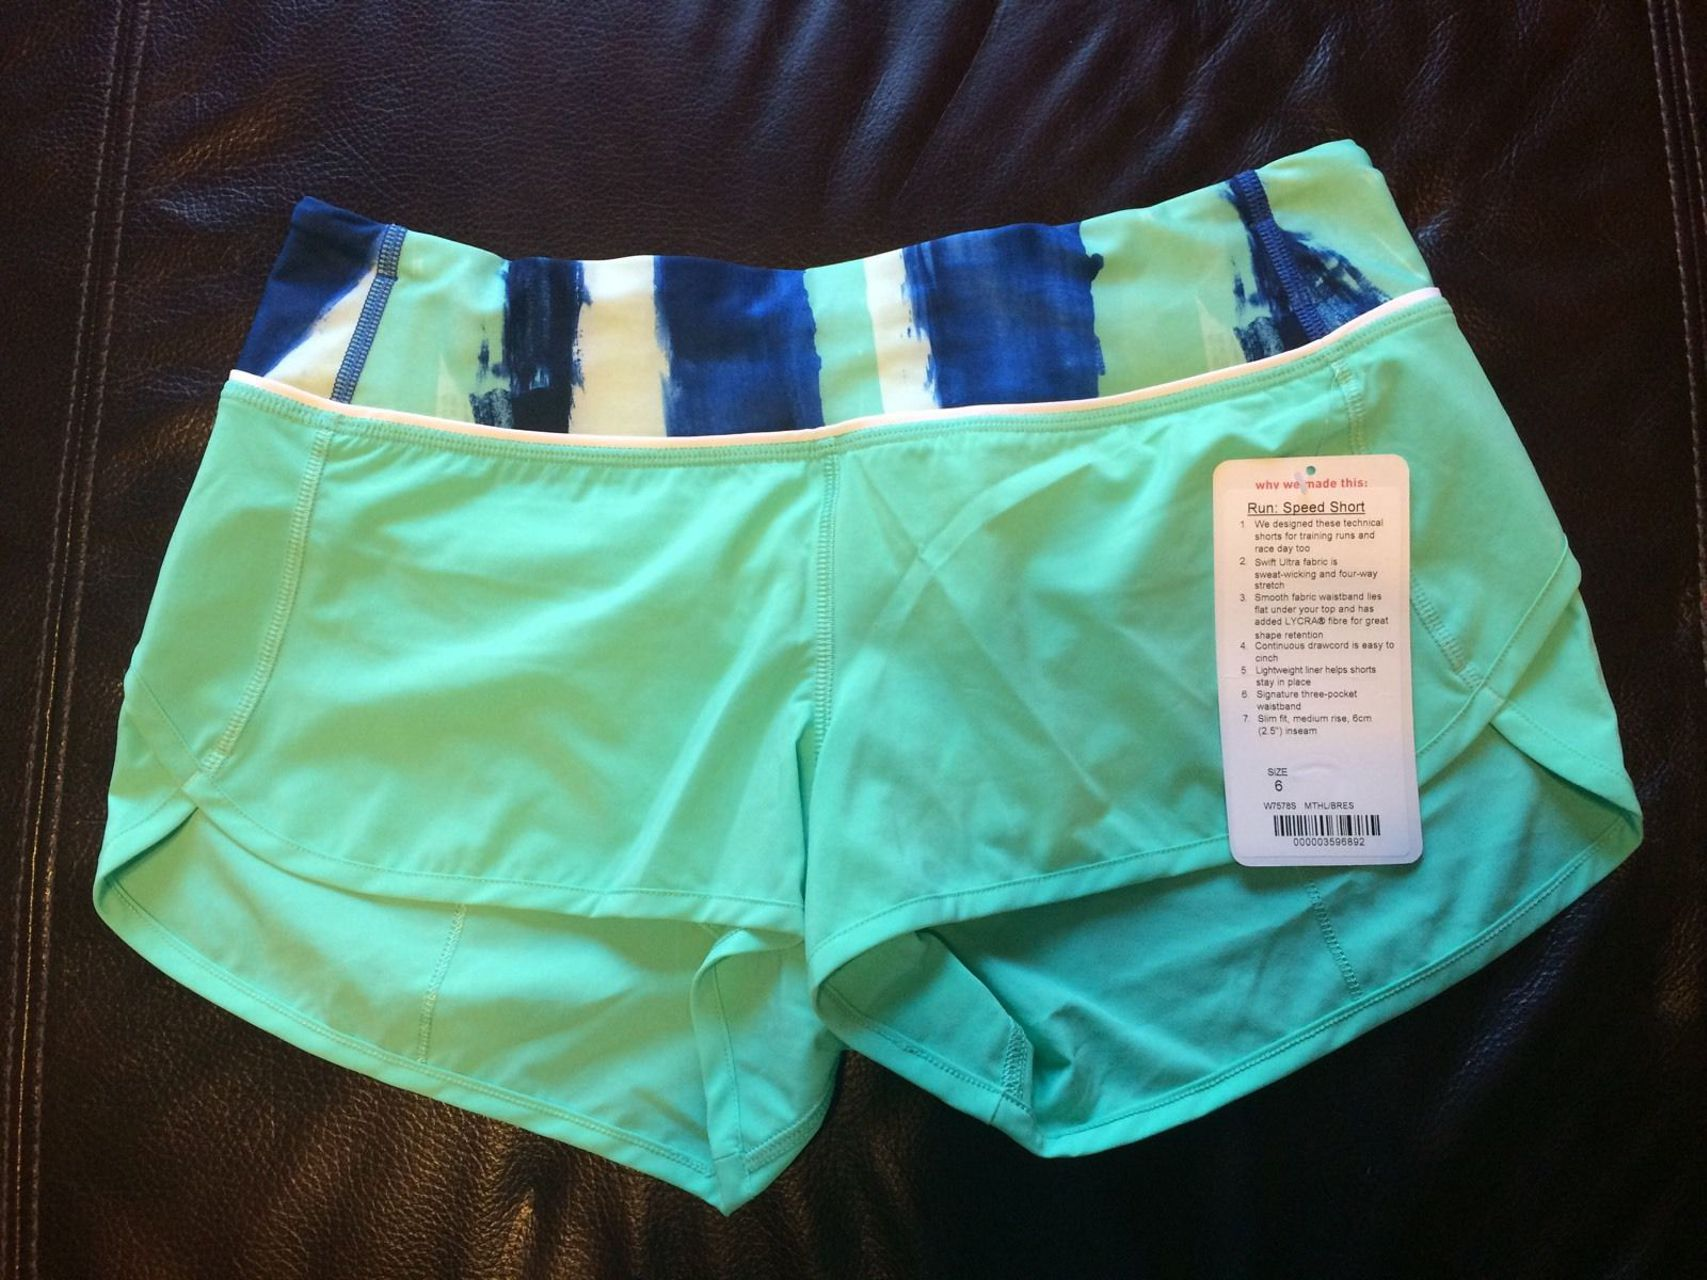 Lululemon Run:  Speed Short *4-way Stretch - Menthol / Brush Strokes Harbor Blue Menthol